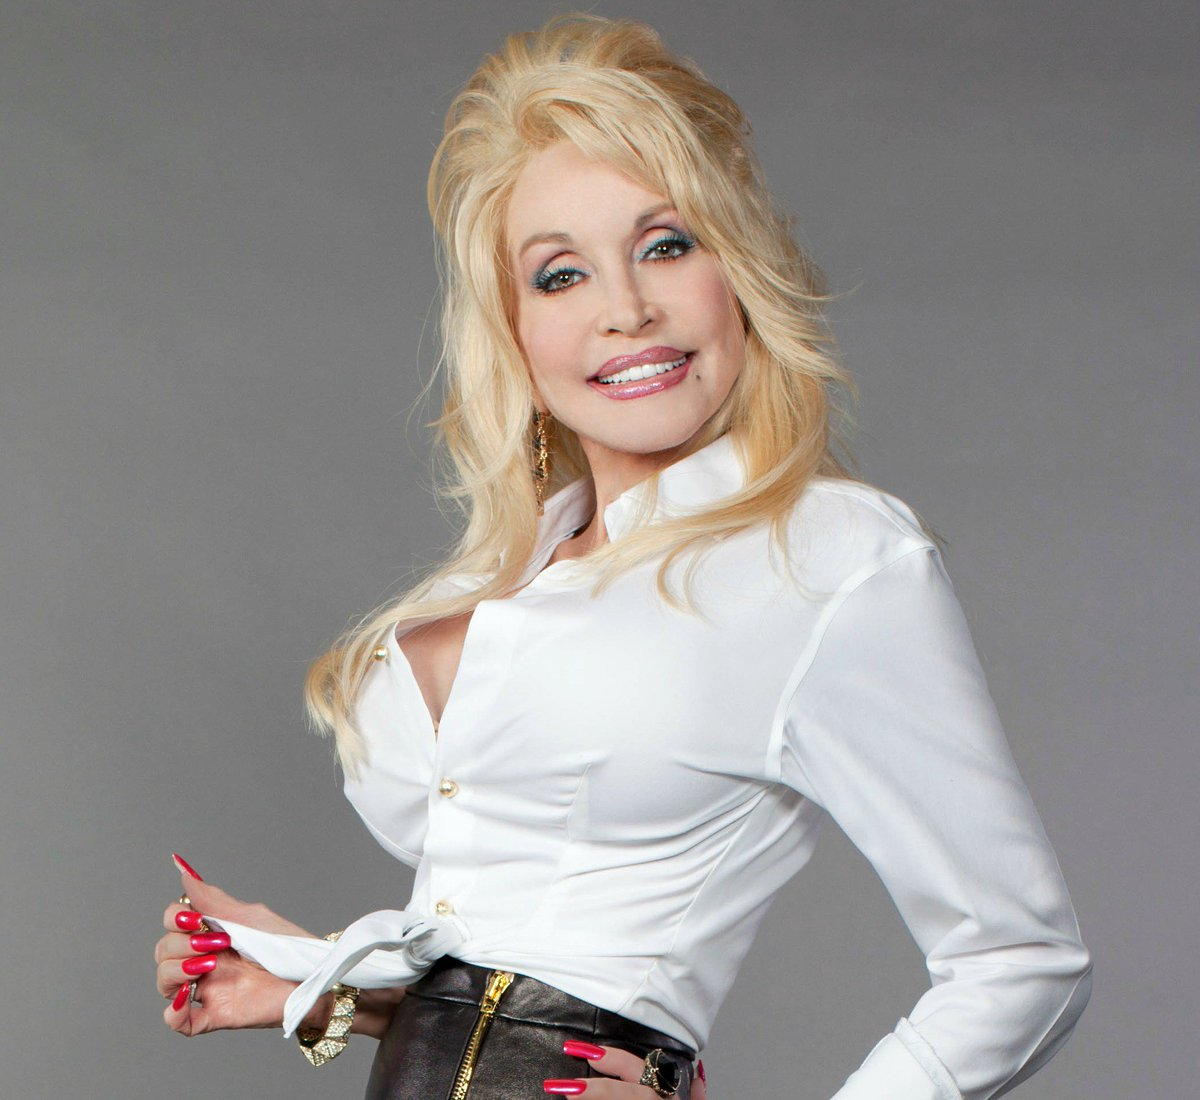 Pinch us! The legendary @DollyParton has her own music video channel on ZUUS! WATCH => https://t.co/TCqG787KqO https://t.co/GiFYPK7mgc